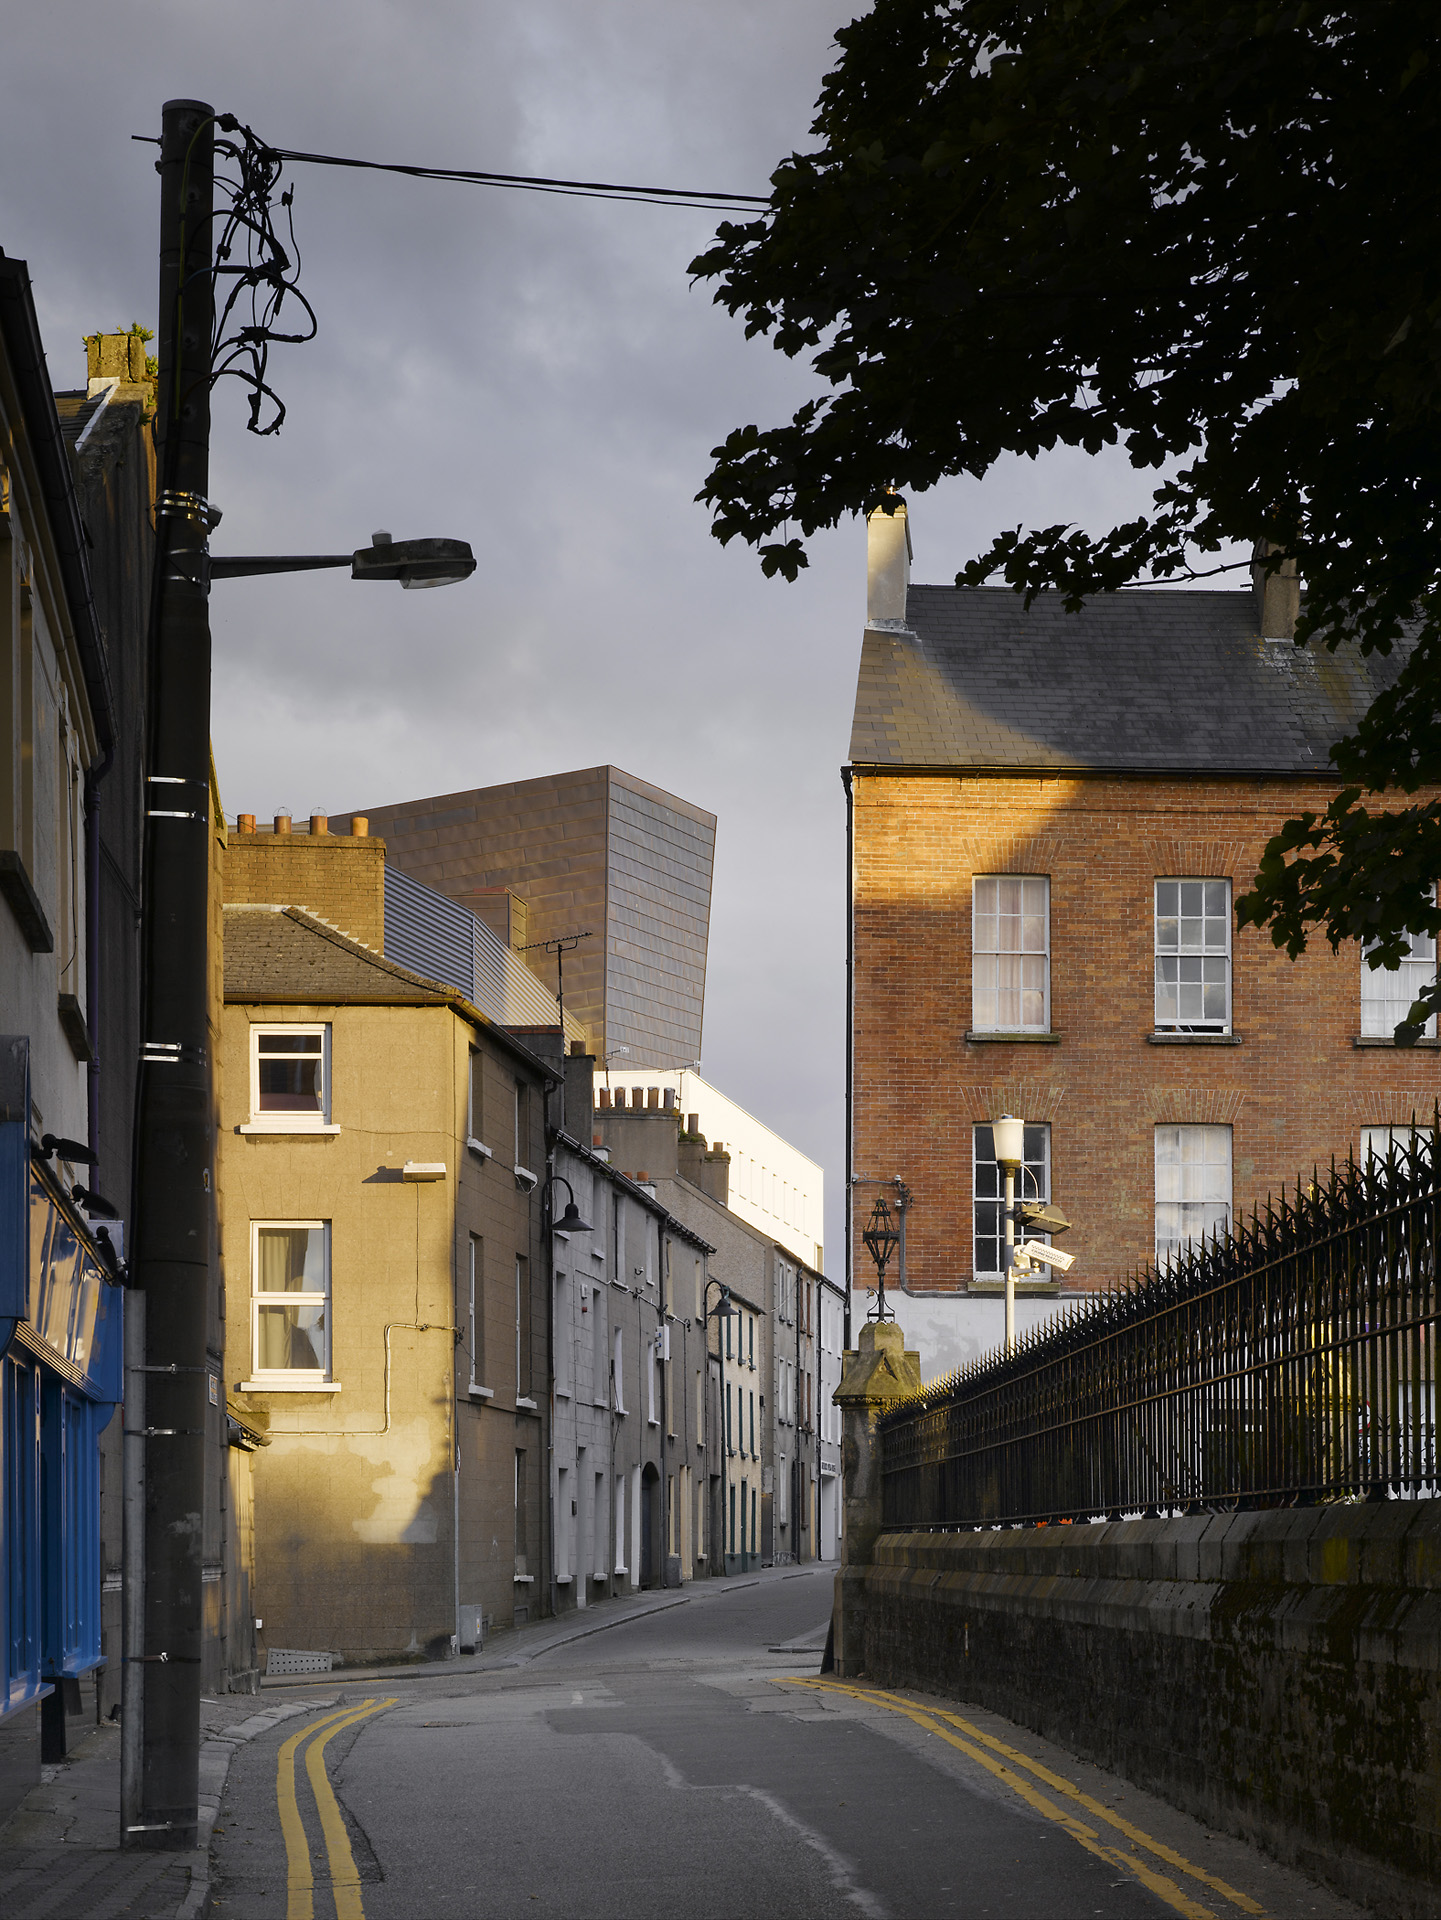 National Opera House Wexford viewed from the north along High Street with fly tower above the roofscape